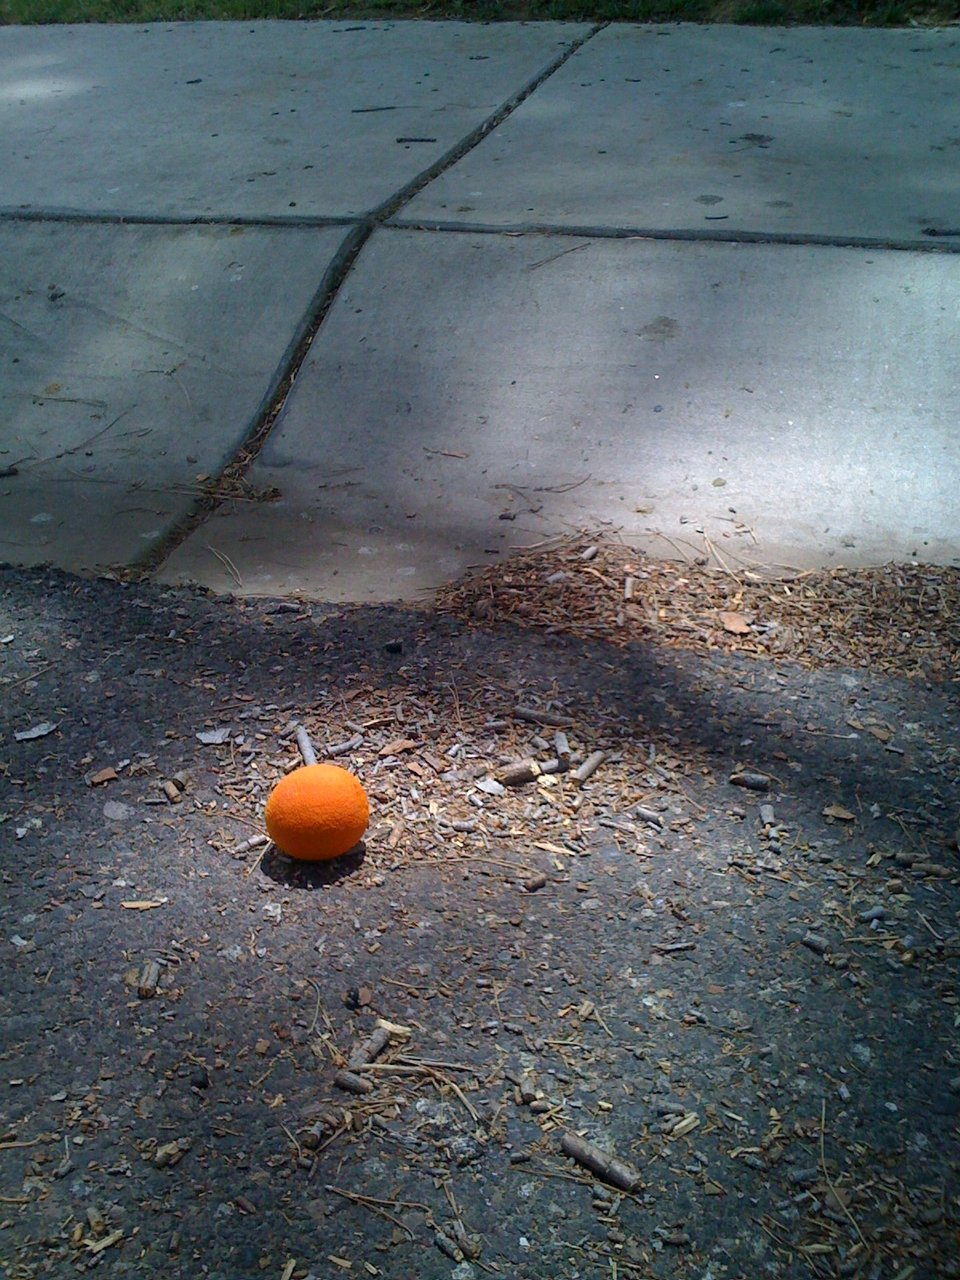 Phoenix, Arizona, where fruit then falls onto your driveway.